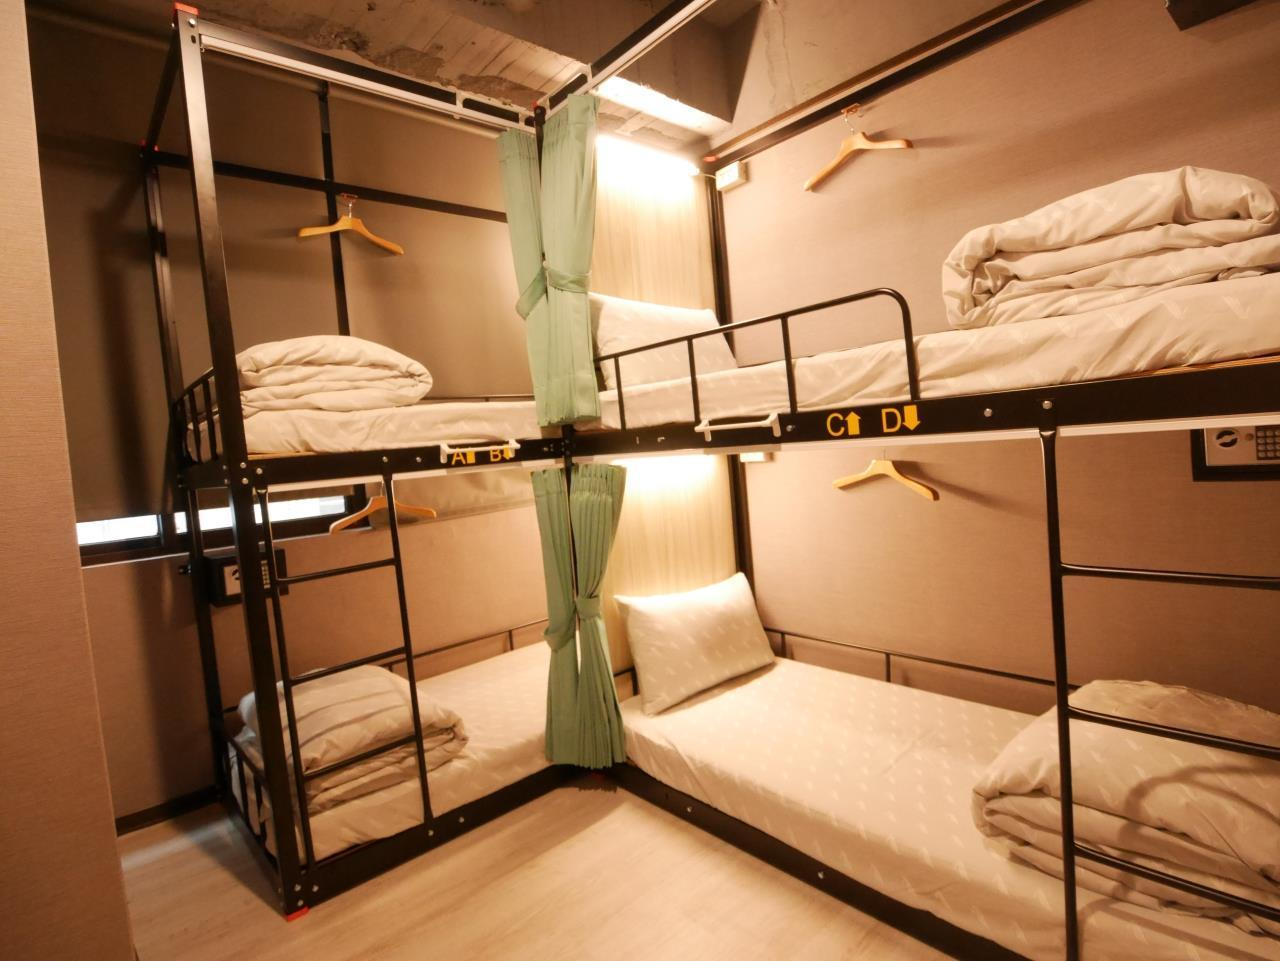 4 床男性宿舍房的 1 張單人床 (Single Bed in 4-Bed Male Dormitory Room)